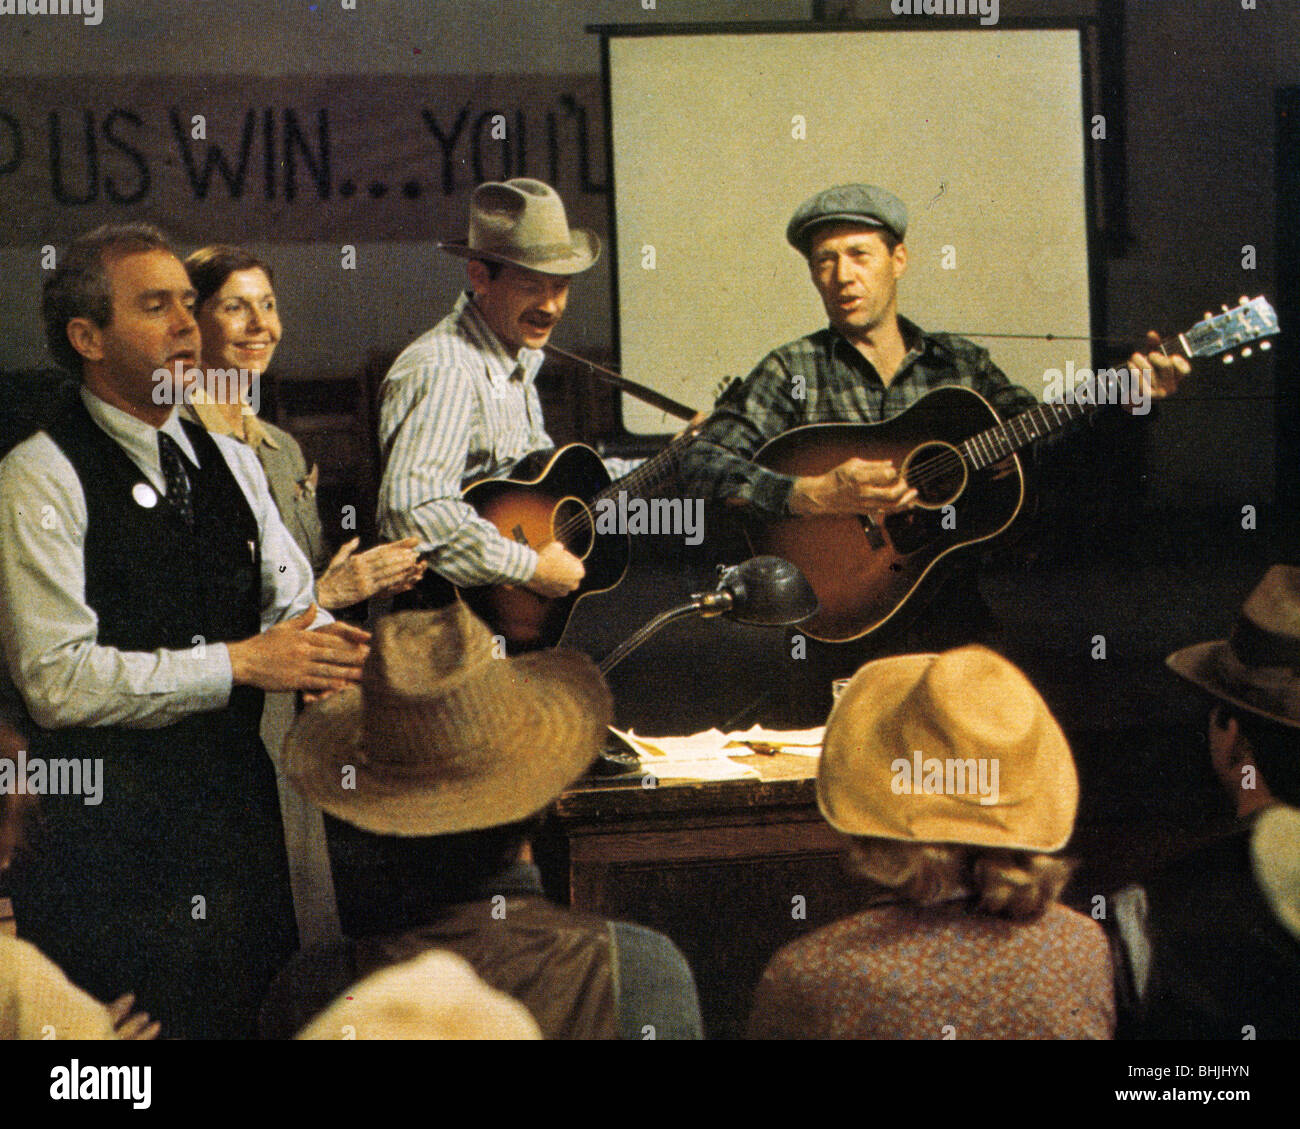 BOUND FOR GLORY  1976 UA film with David Carradine (at right) as Woody Guthrie and Ronny Cox - Stock Image